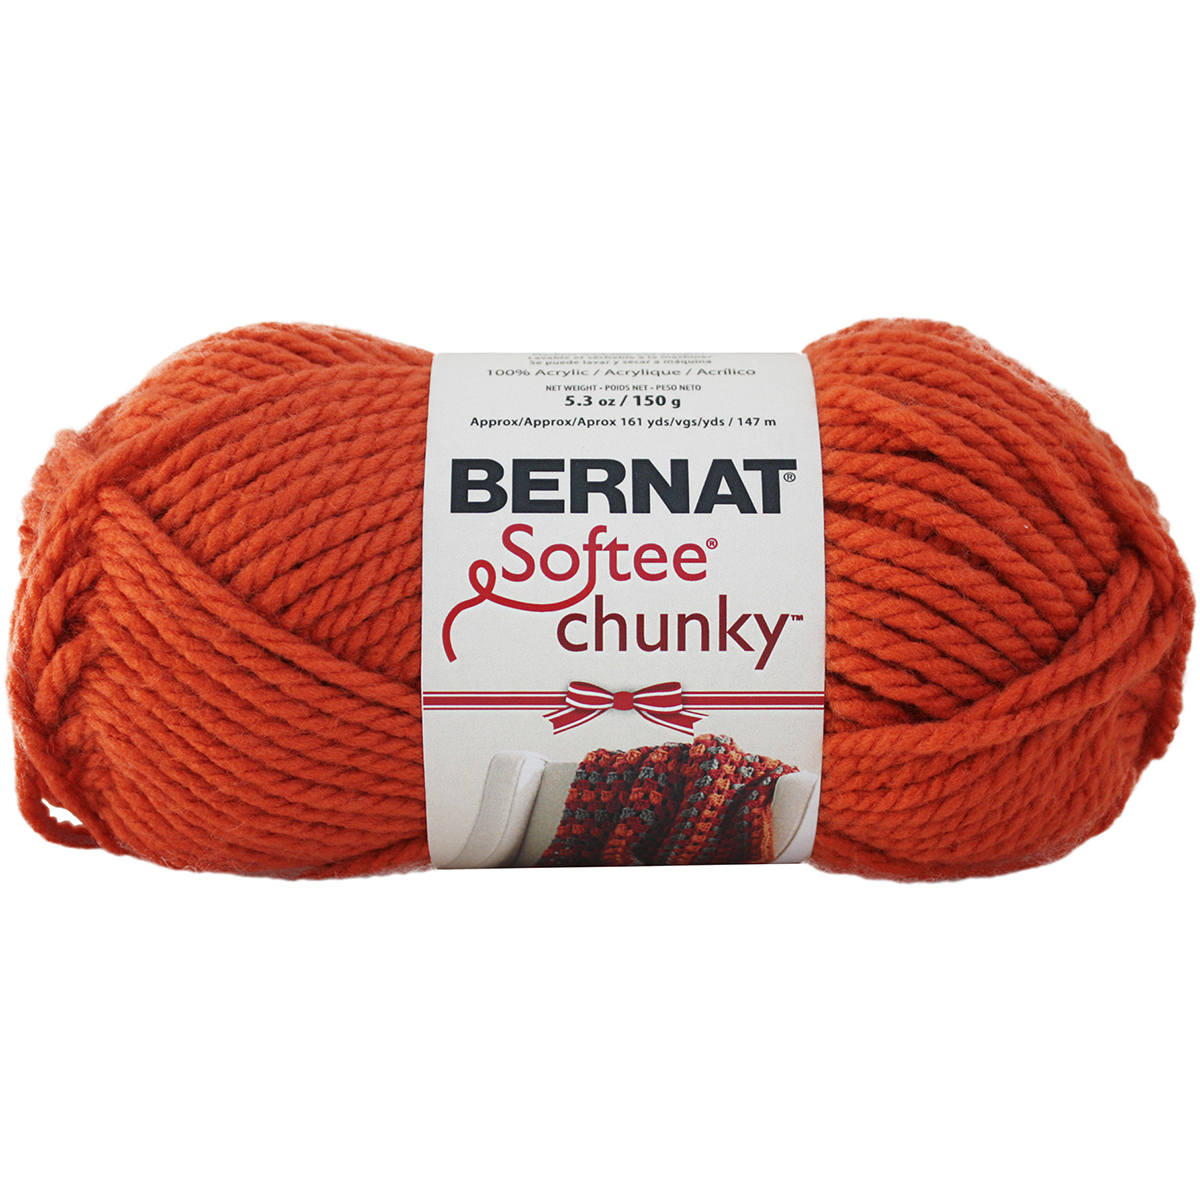 Chunky Yarn : ... Chunky Holiday Yarn ? Bernat? Softee? Chunky Holiday Yarn Pumpkin